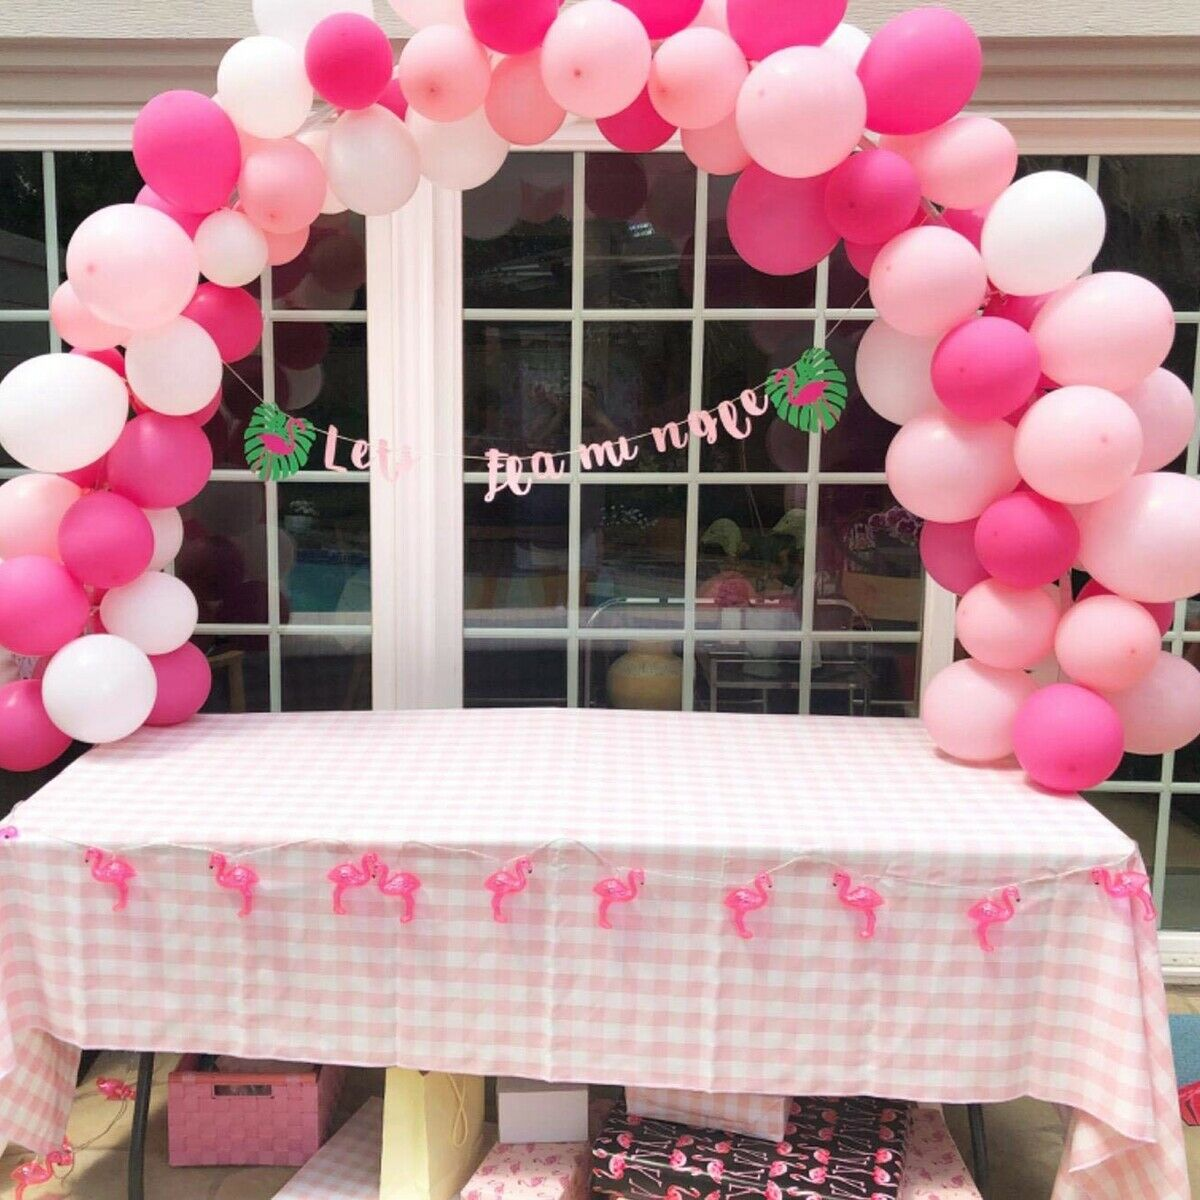 Large Balloon Arch Column Stand Frame Kit for Birthday Wedding Party Decoration